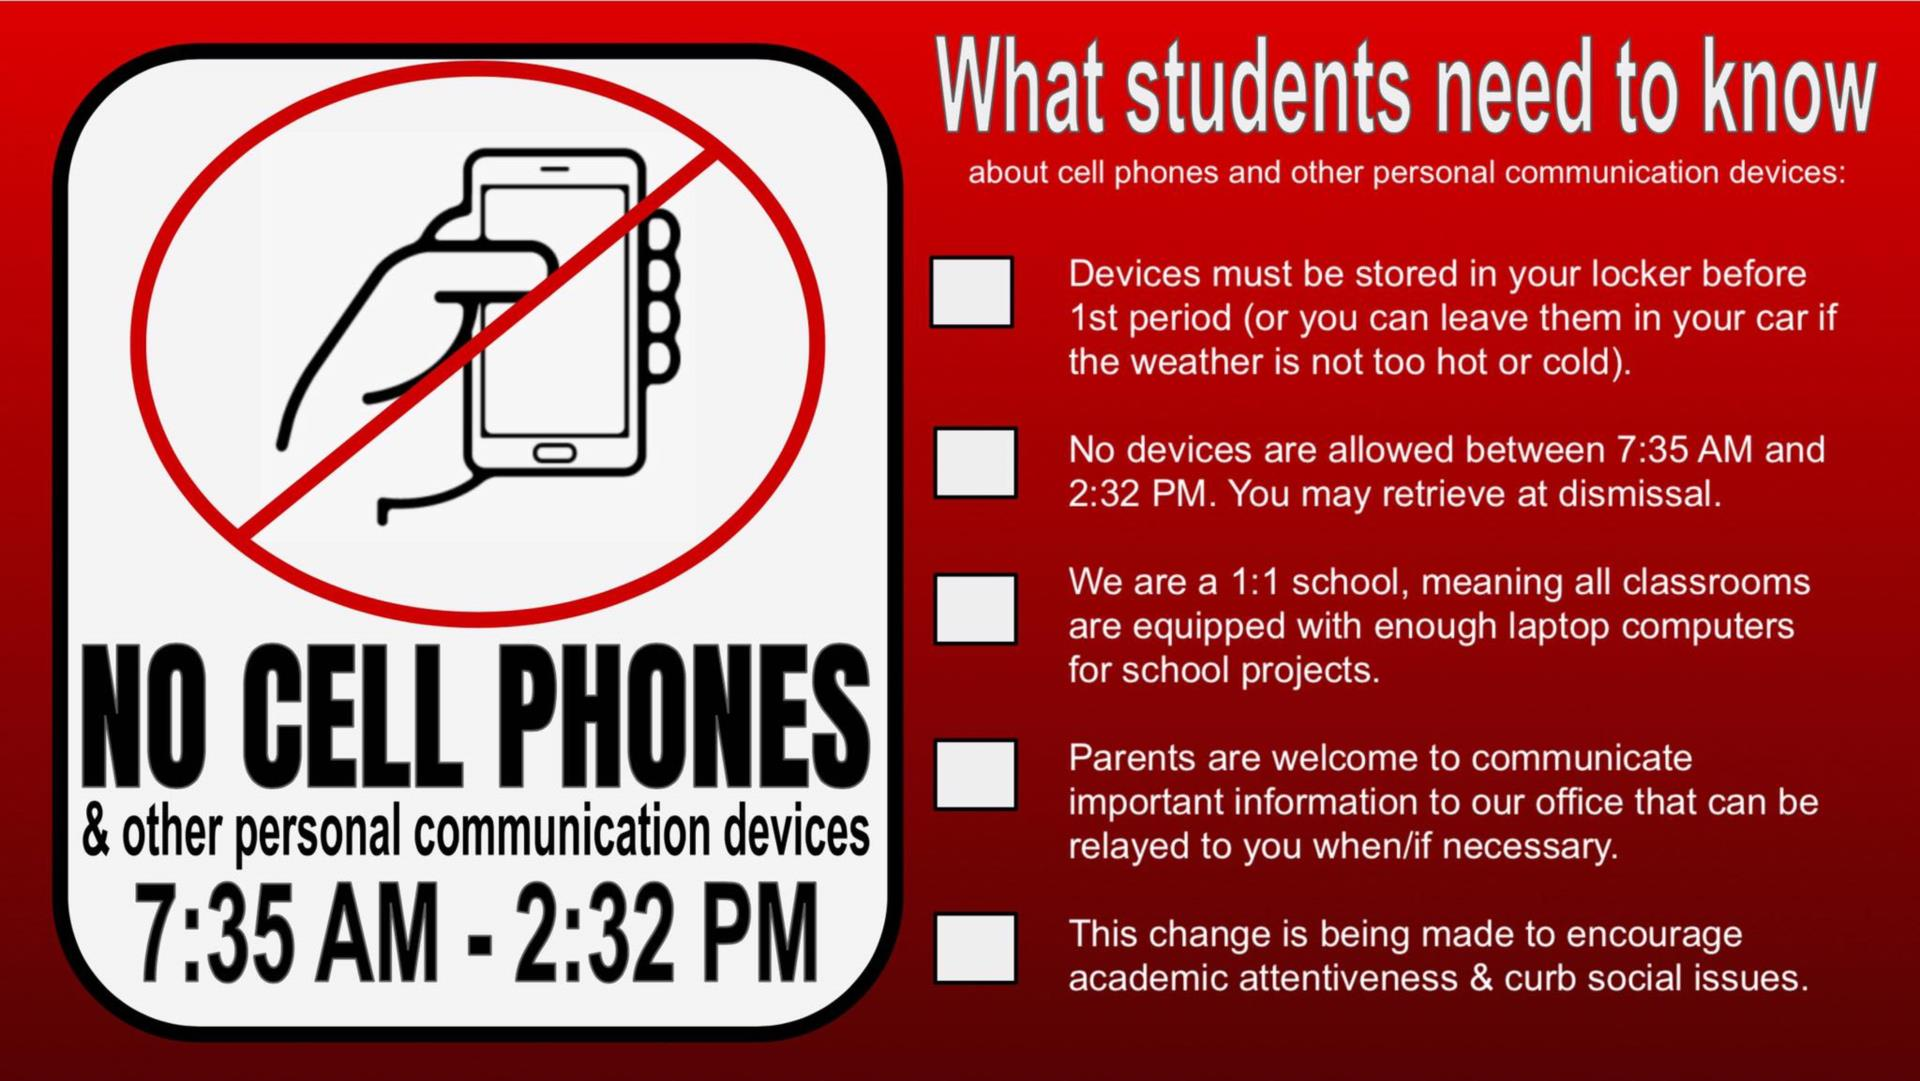 No Cell Phones Policy